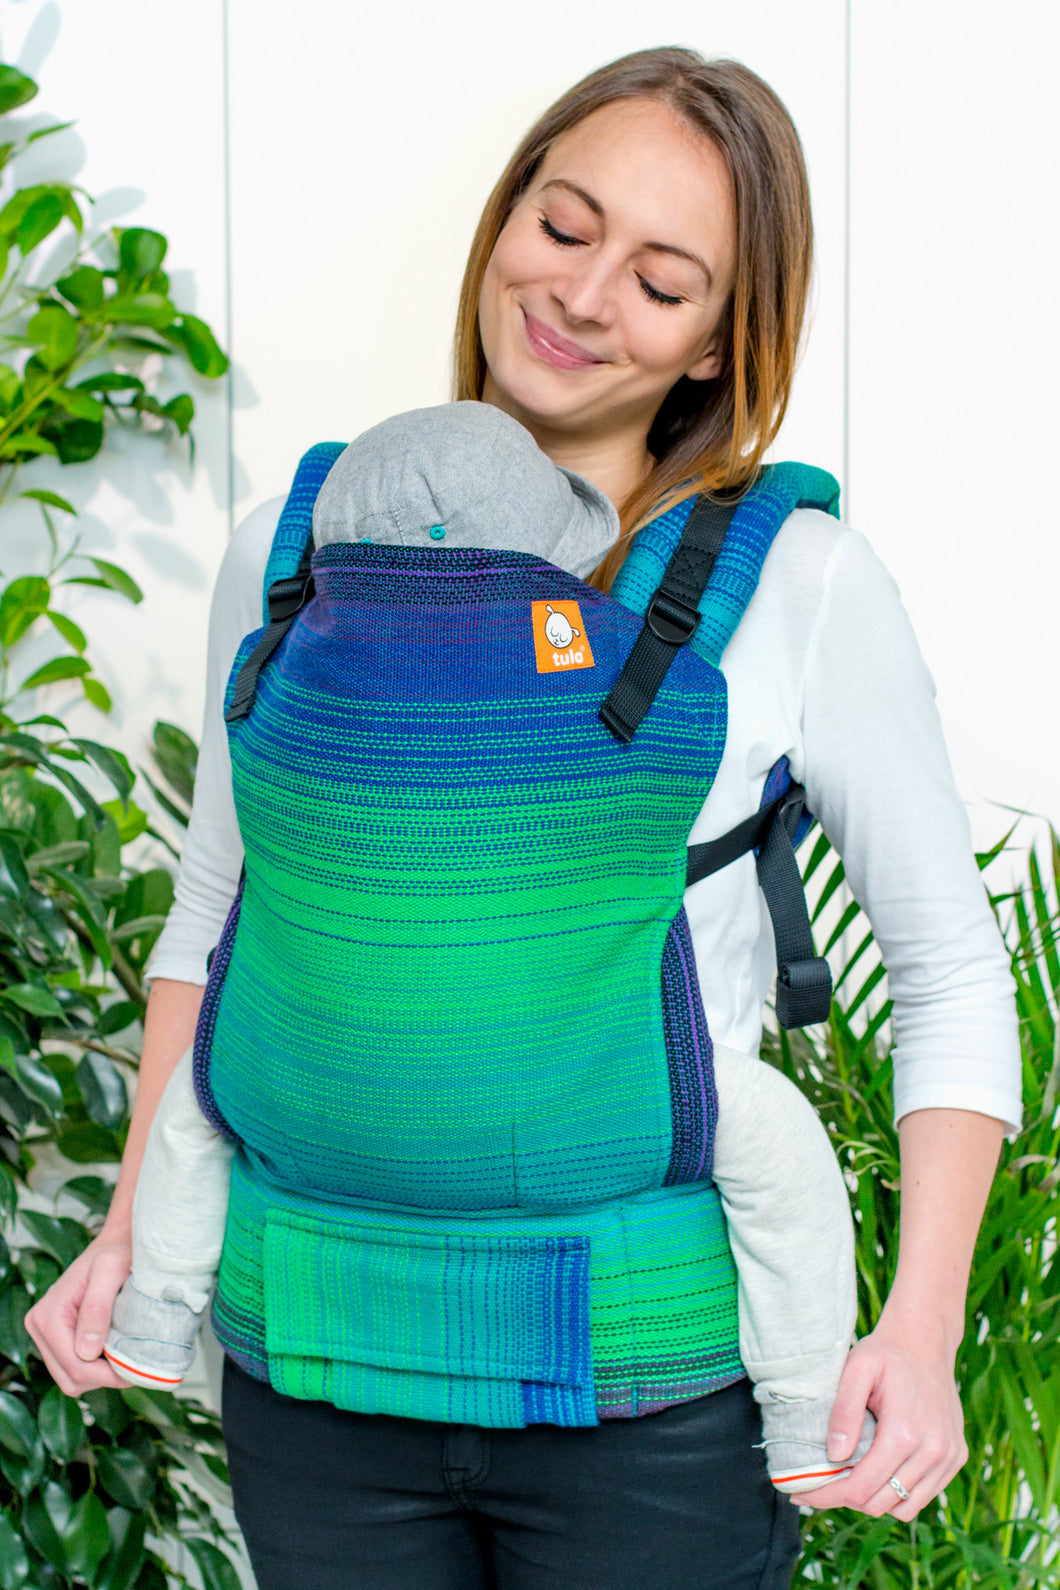 Half Toddler Wrap Conversion Carrier - The Happiest Bird Peacock Weft 2 - Baby Tula